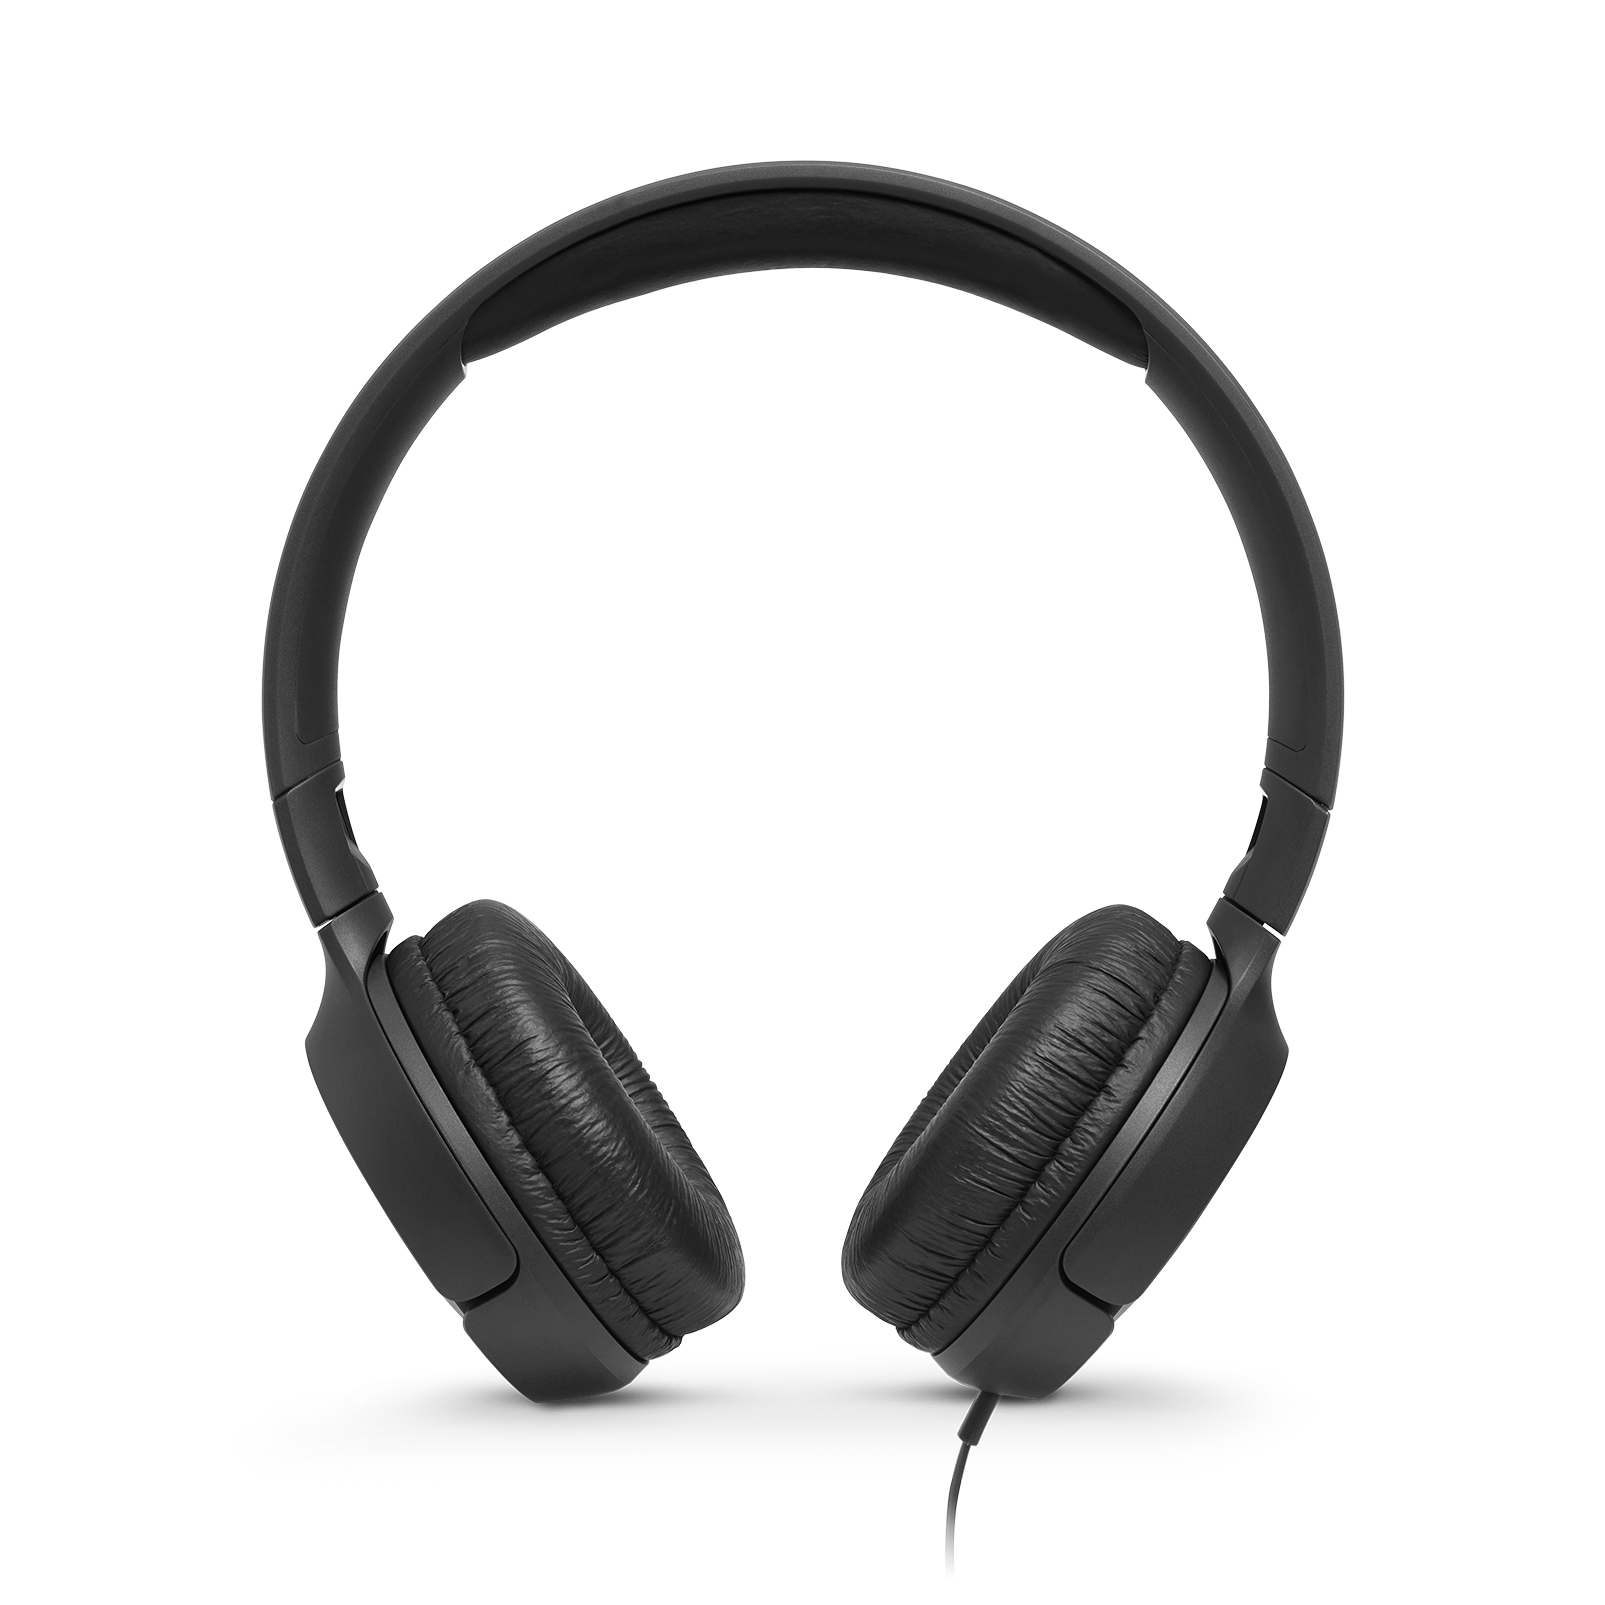 JBL TUNE 500 - Black - Wired on-ear headphones - Front